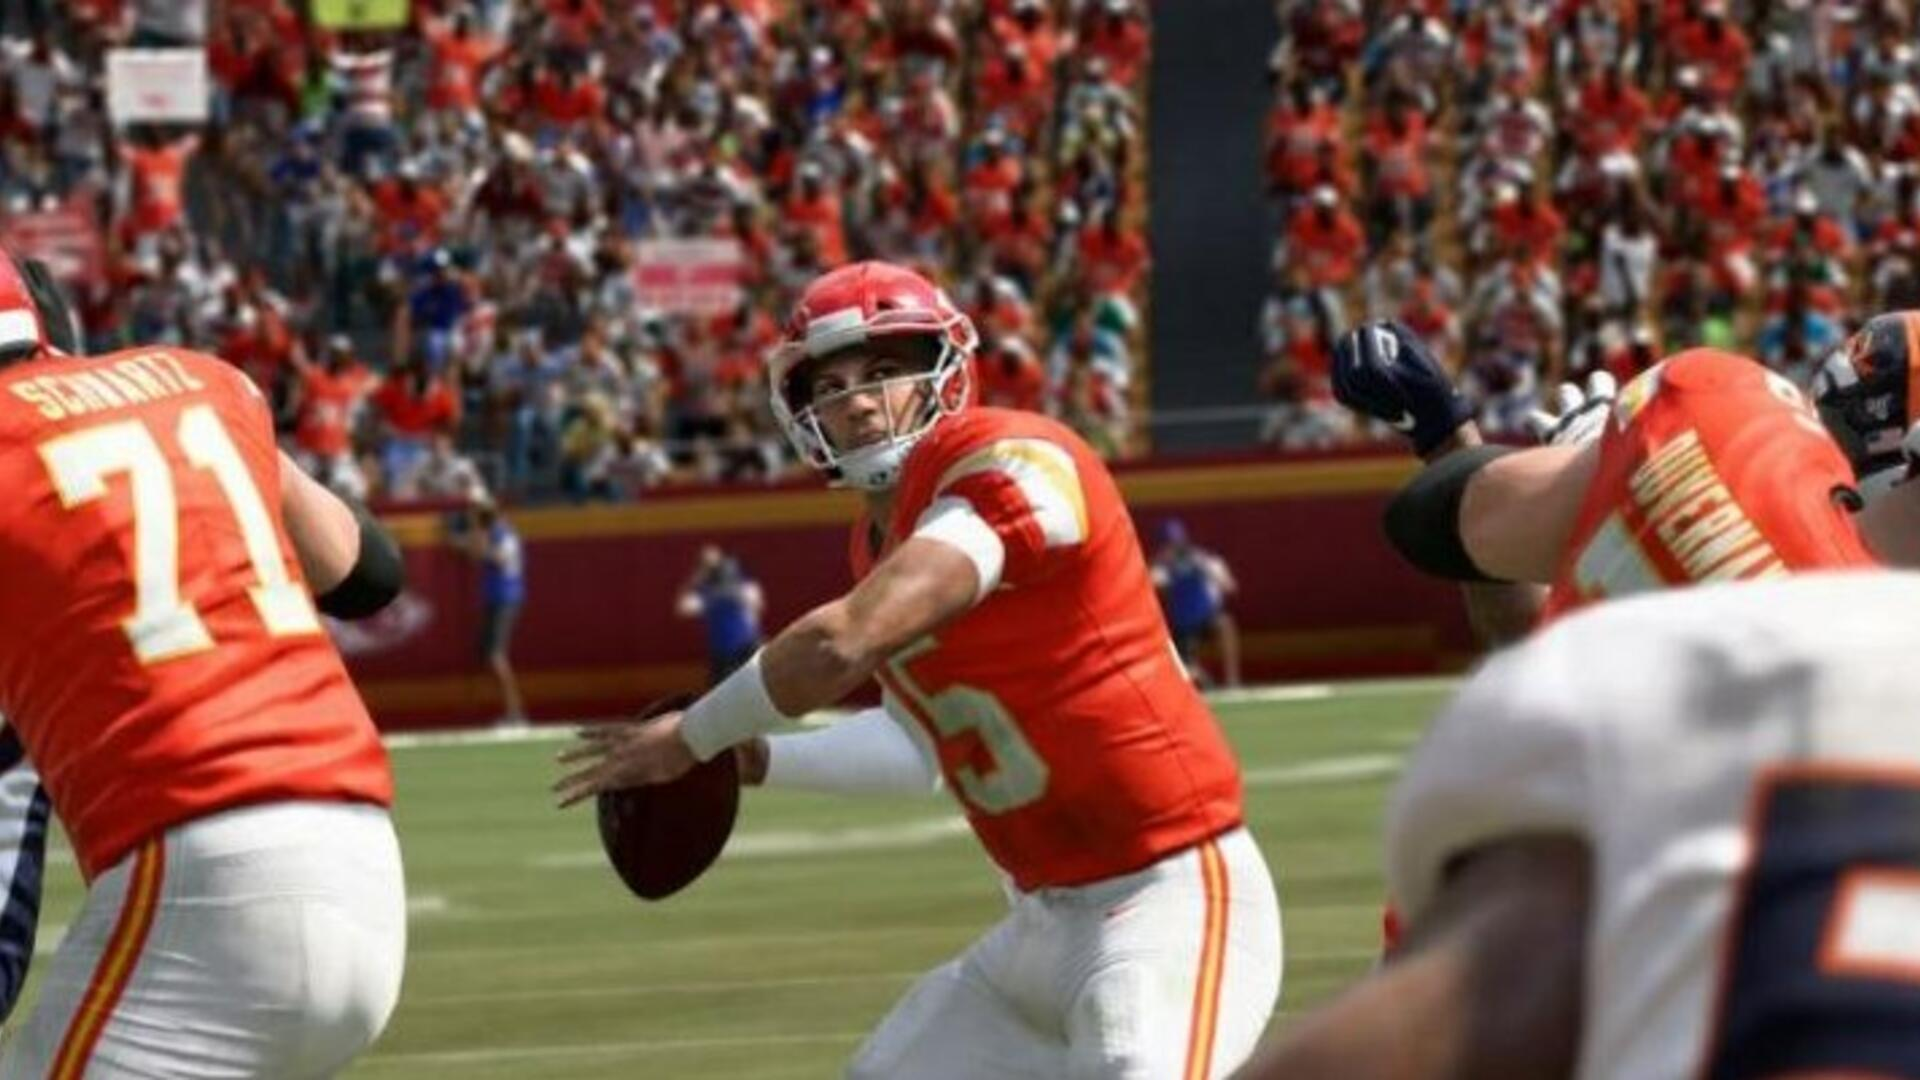 New Madden 20 Gameplay Features Superstar X Factors Players